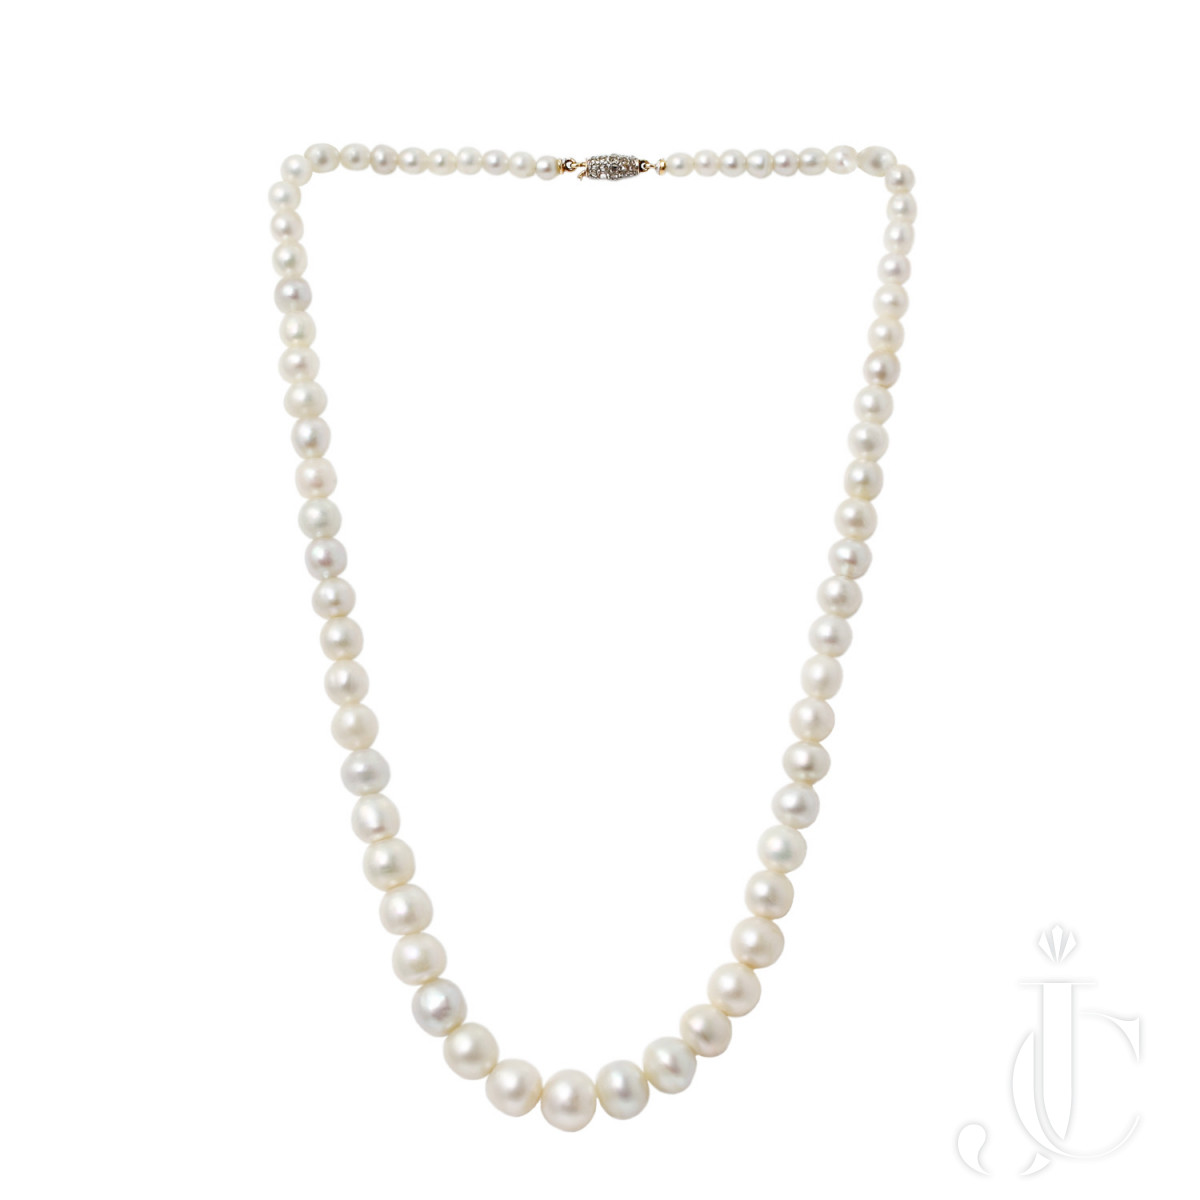 A Single Row Natural Saltwater Pearl Necklace 3.44 to 8.88 mm 105.64 carats -152.40 Chow